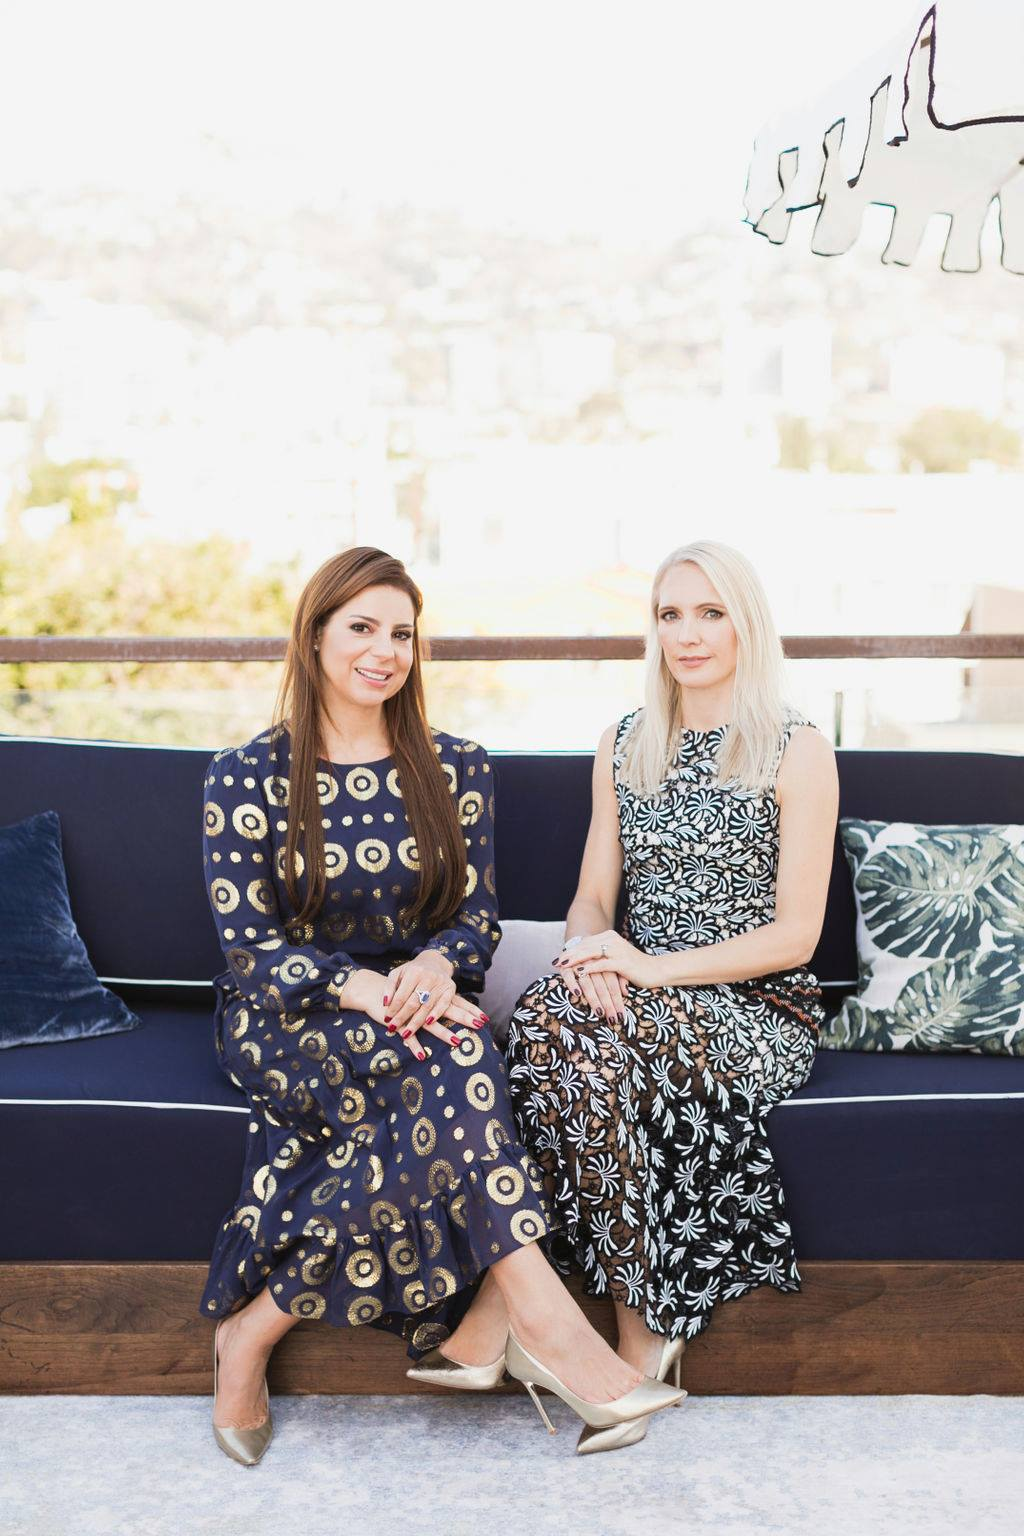 The AllBright Founders, anna jones, AllBright Founders, the allbright